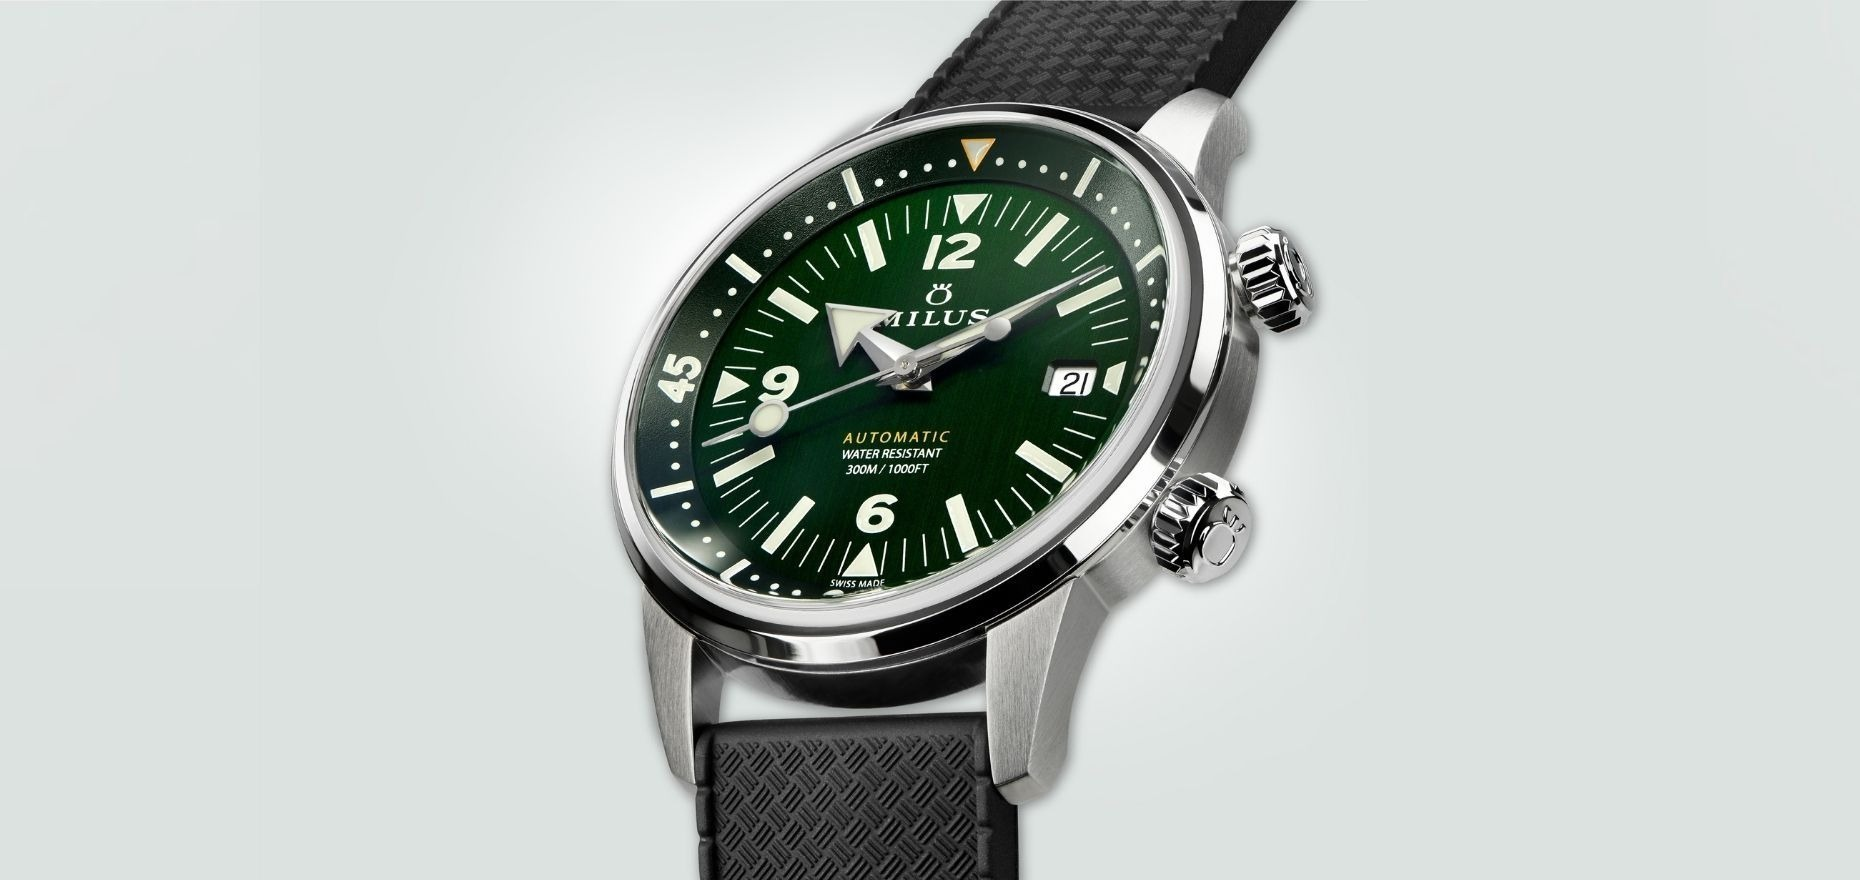 Milus Archimèdes Wild Green: A new green diver from Biel